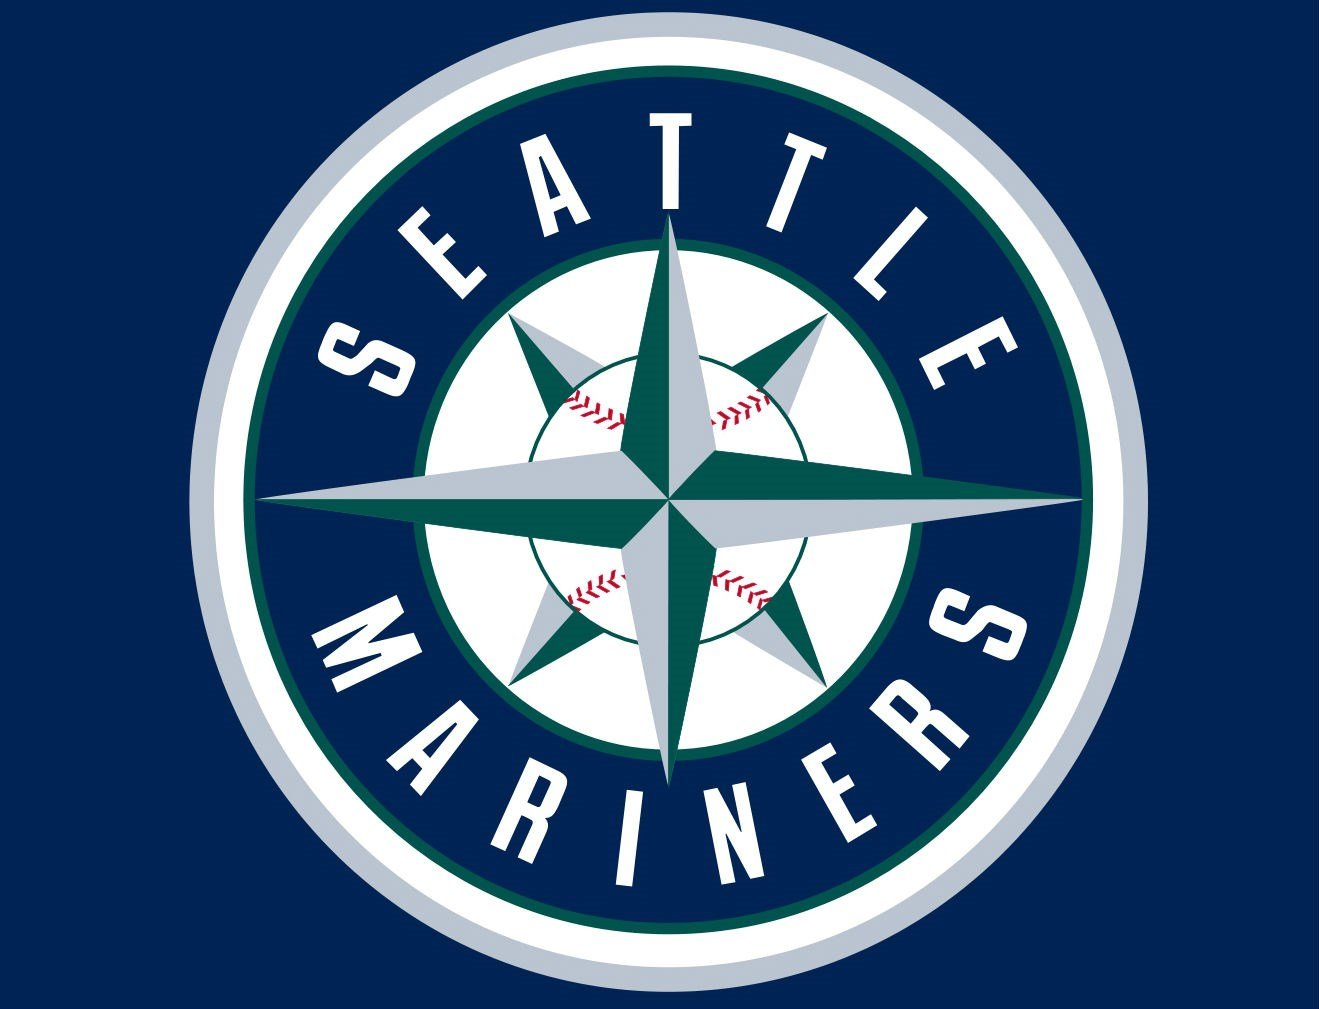 In total, the Mariners selected 40 players in the 2017 MLB Draft.